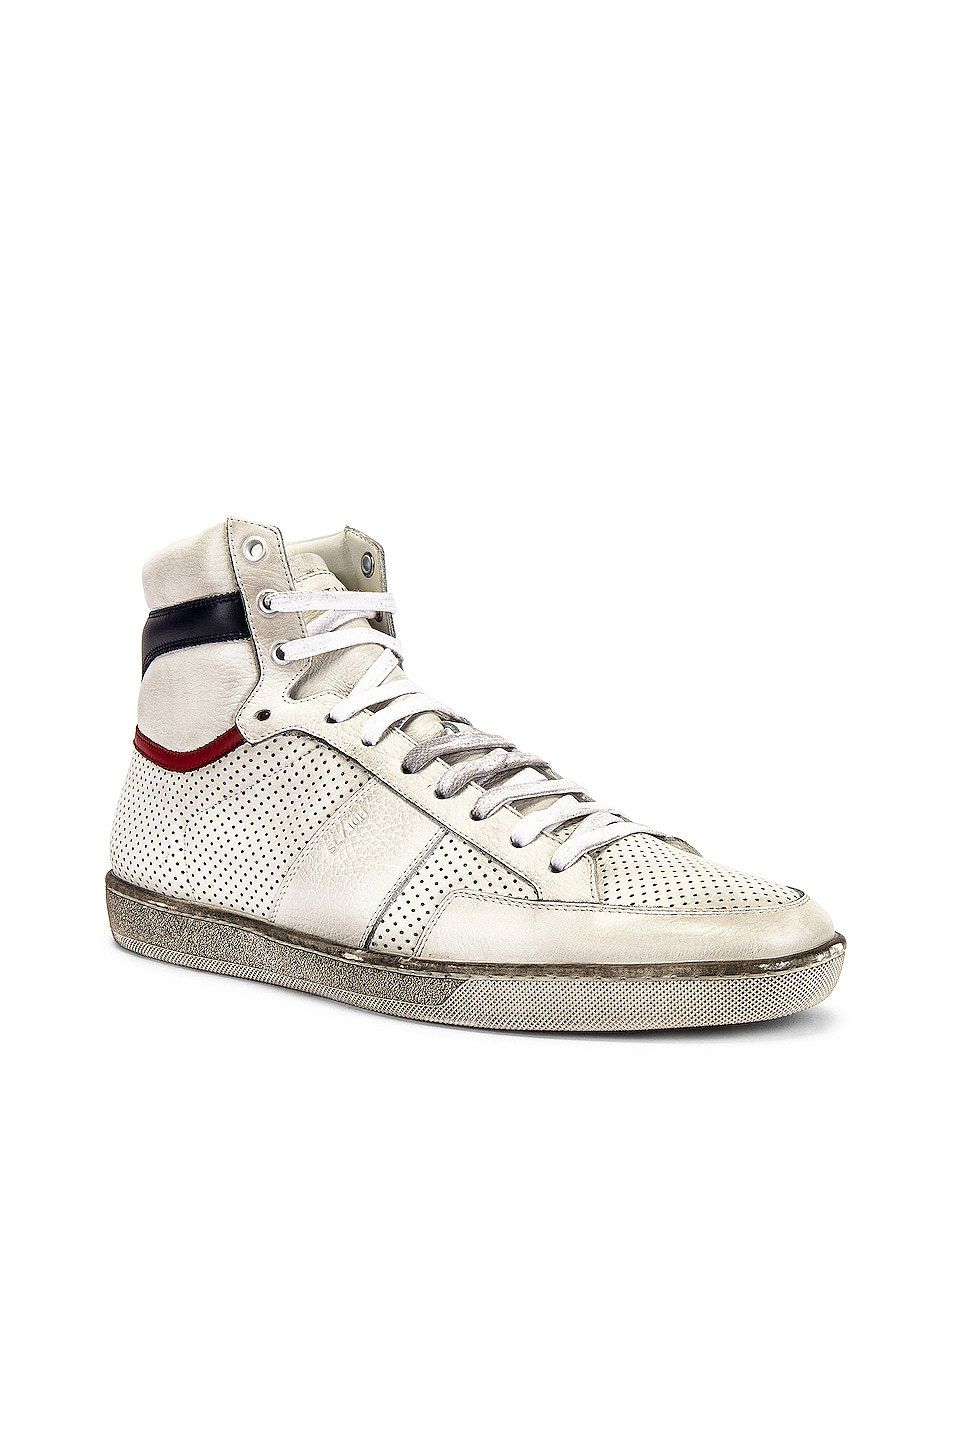 Image 1 of Saint Laurent Court Classic High Top Sneakers in White